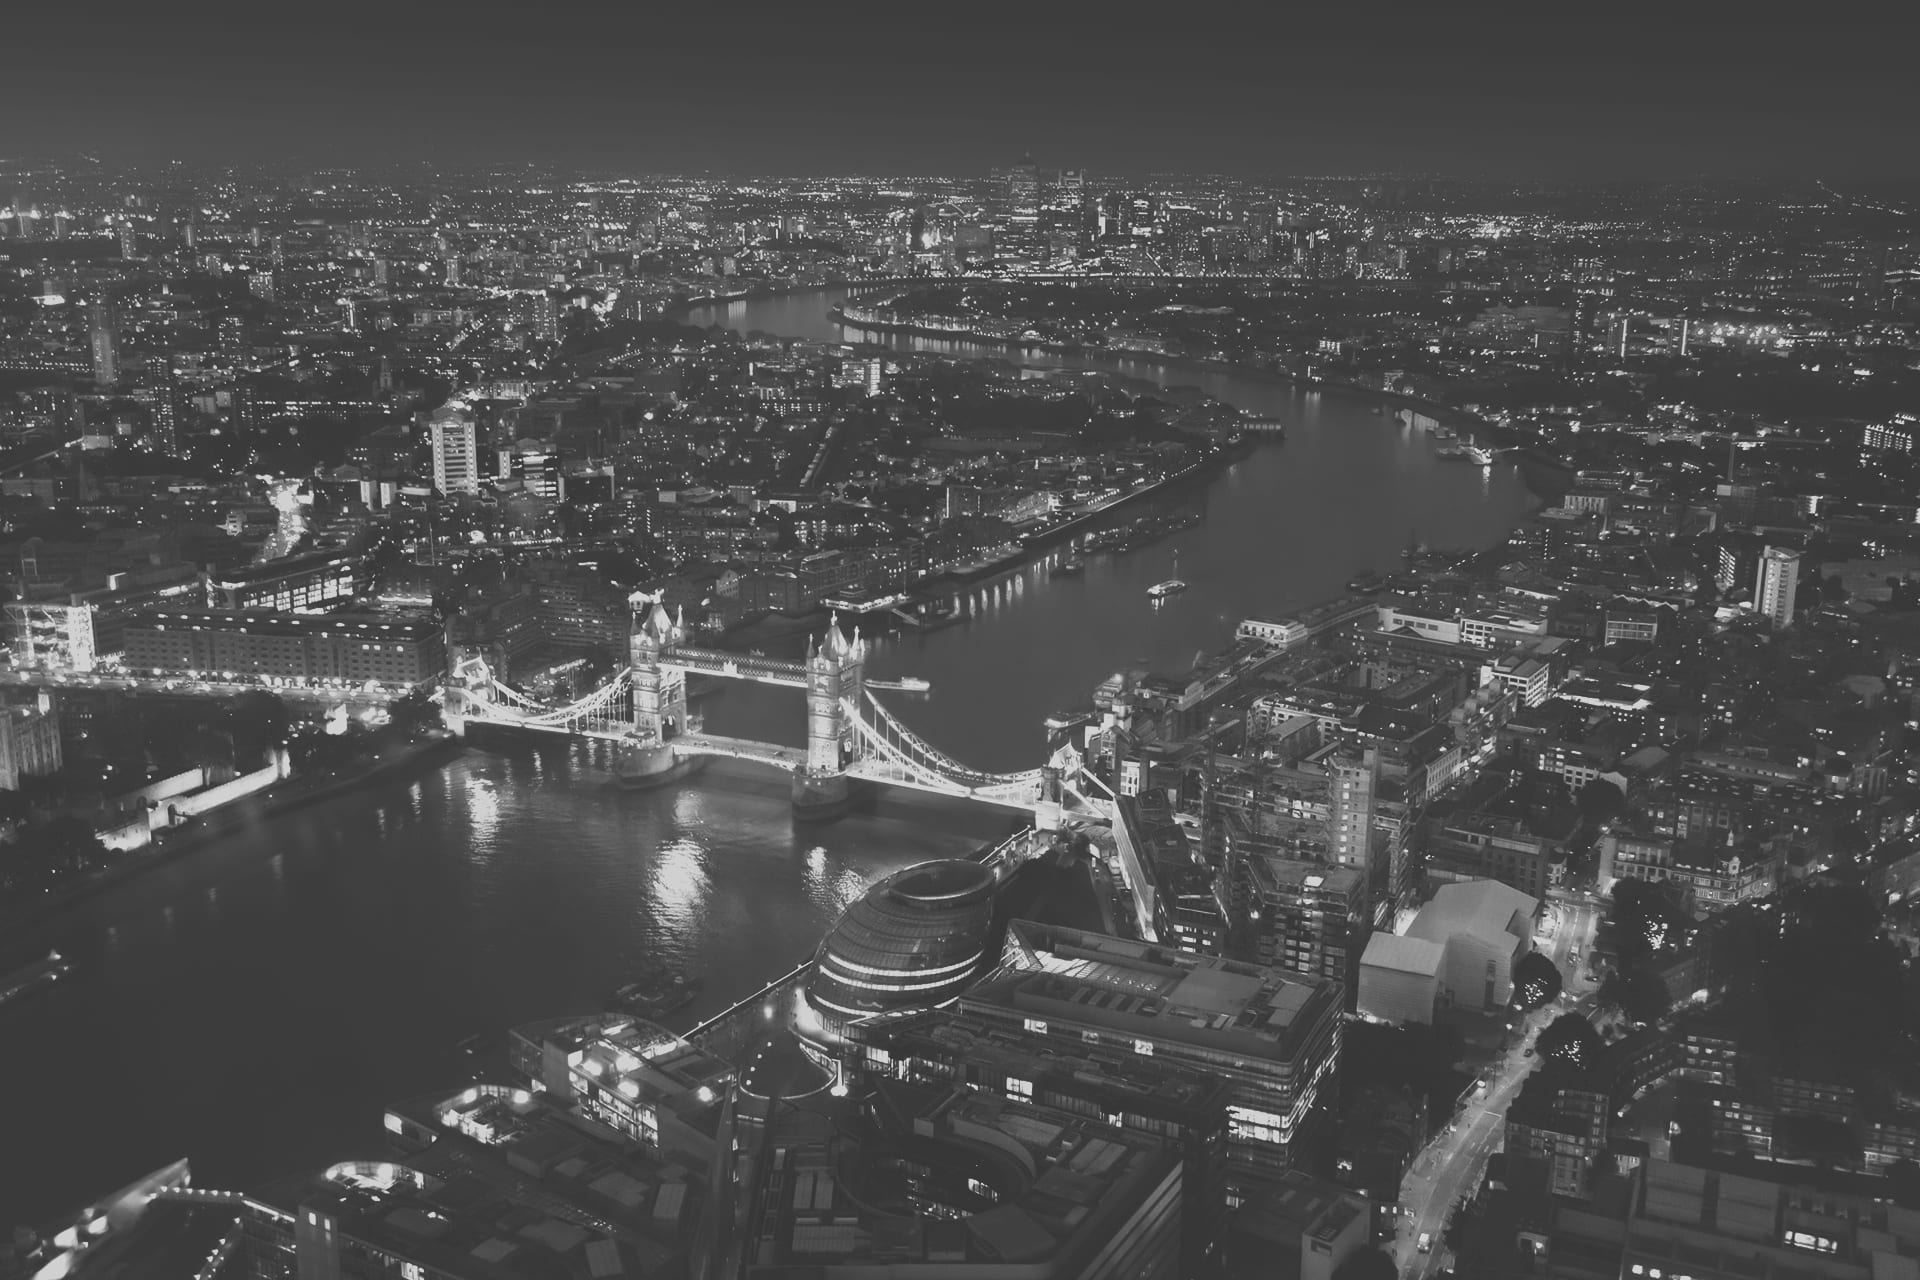 City of London from above at night